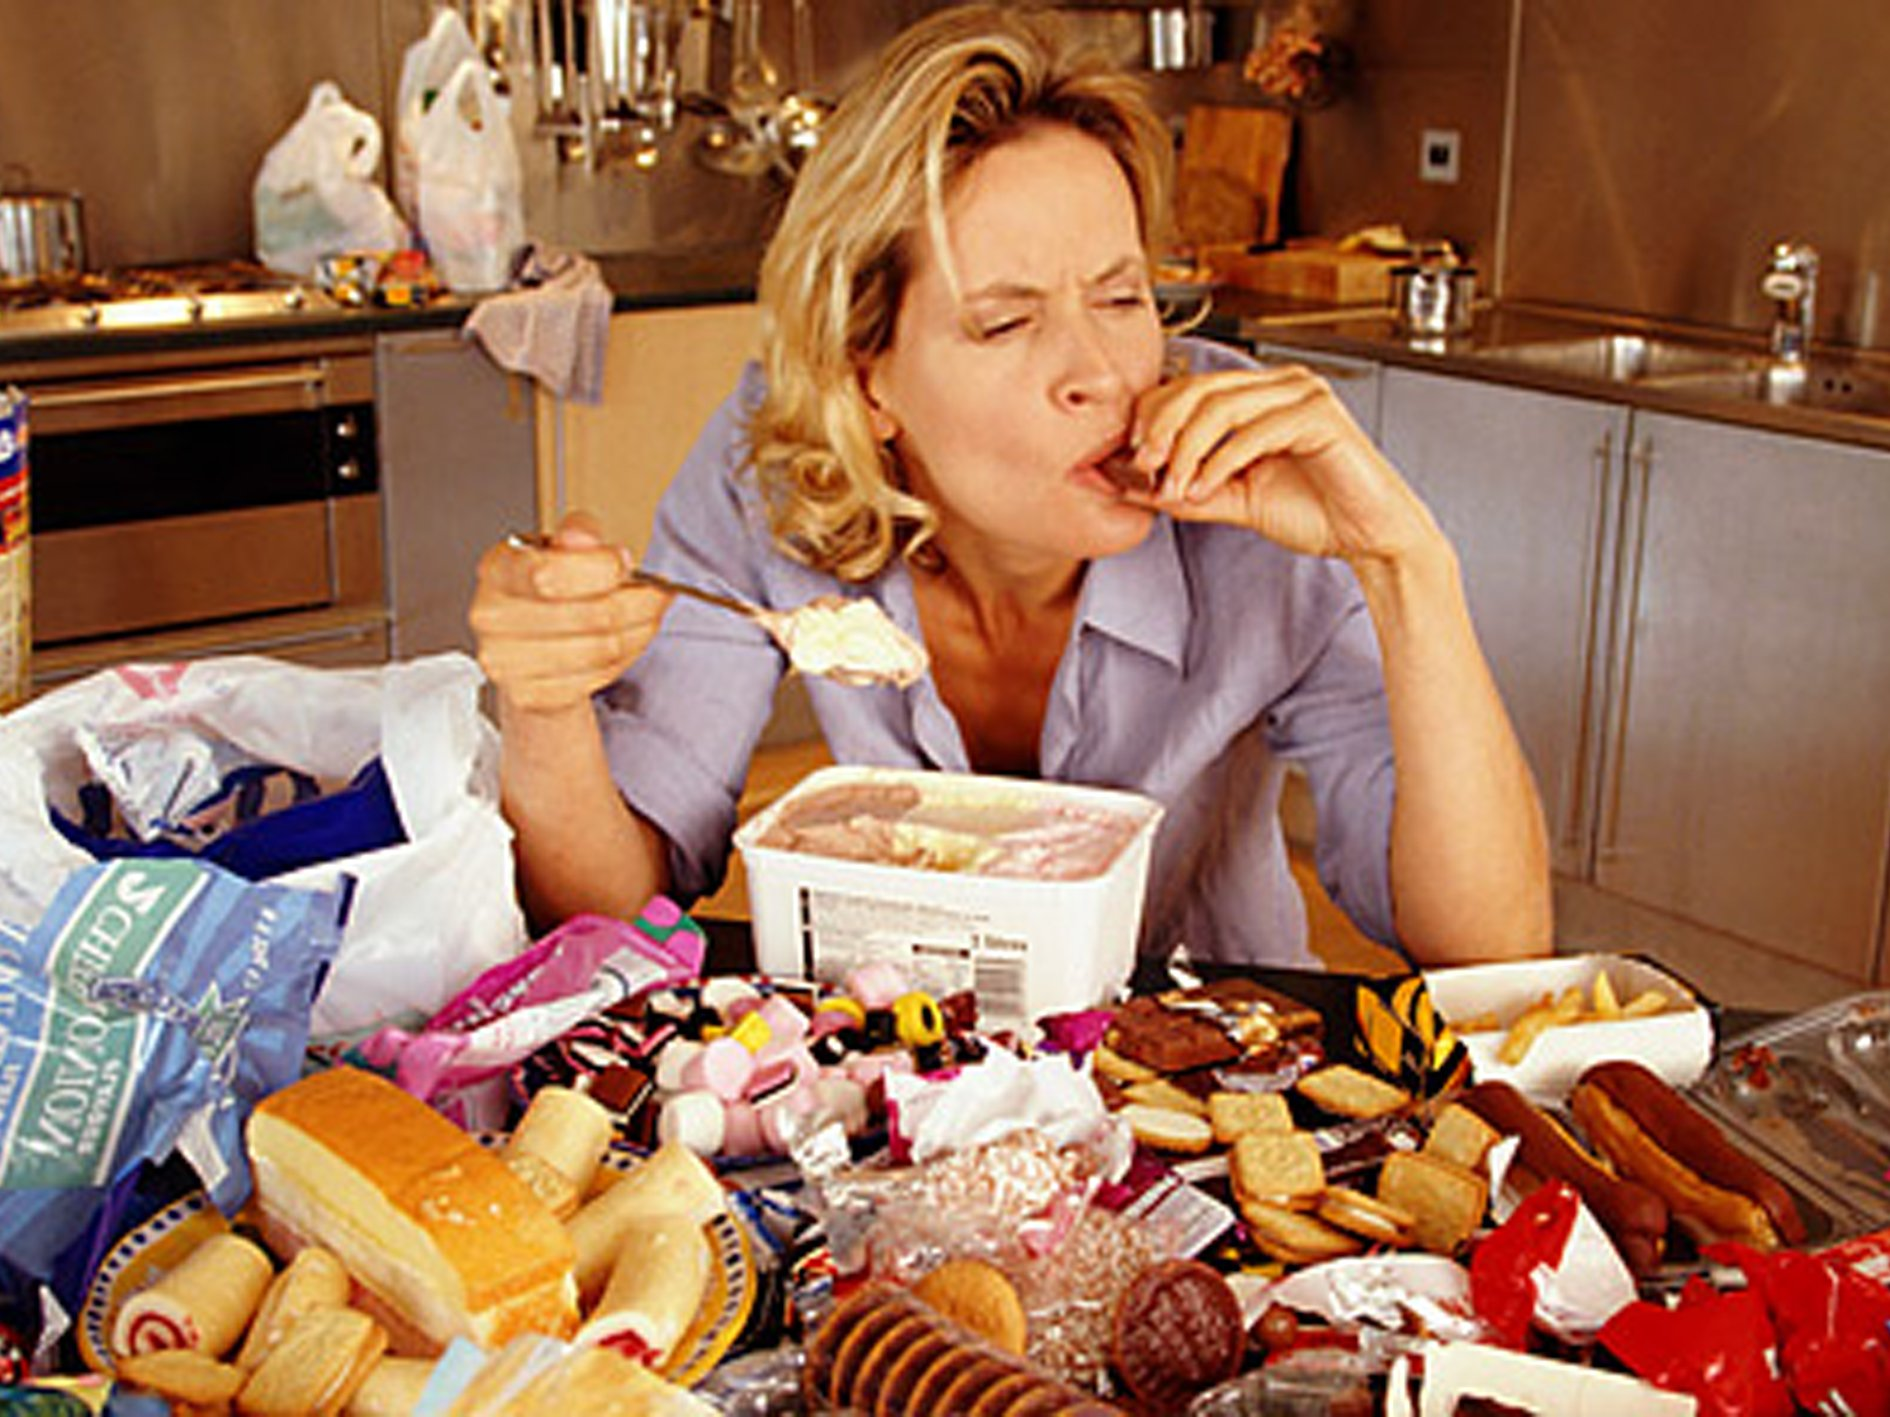 Food addiction: How to know if you're addicted